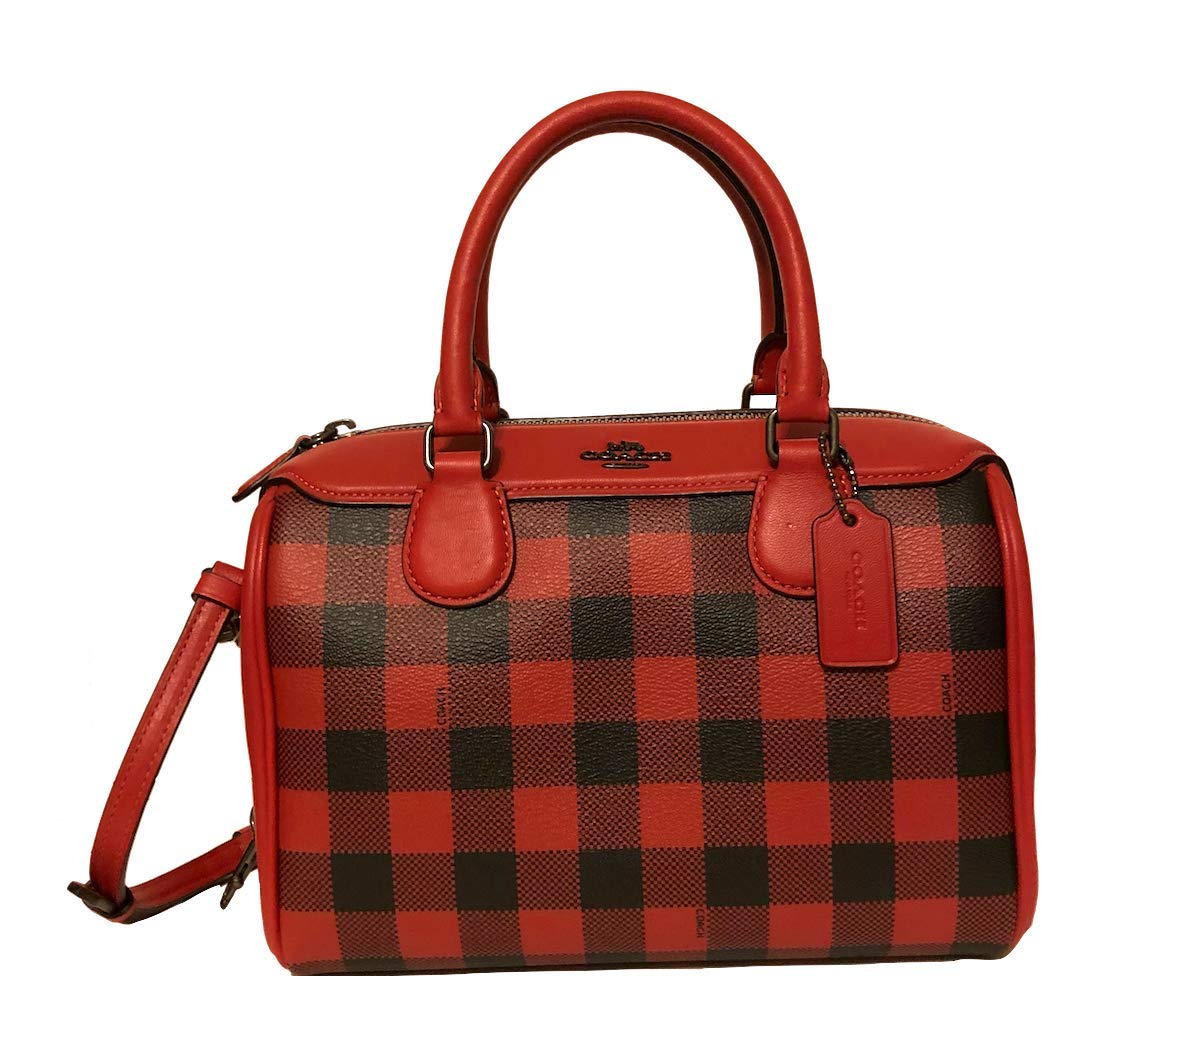 COACH MINI BENNETT SATCHEL IN GINGHAM CANVAS LEATHER F38948 (Ruby Multi)